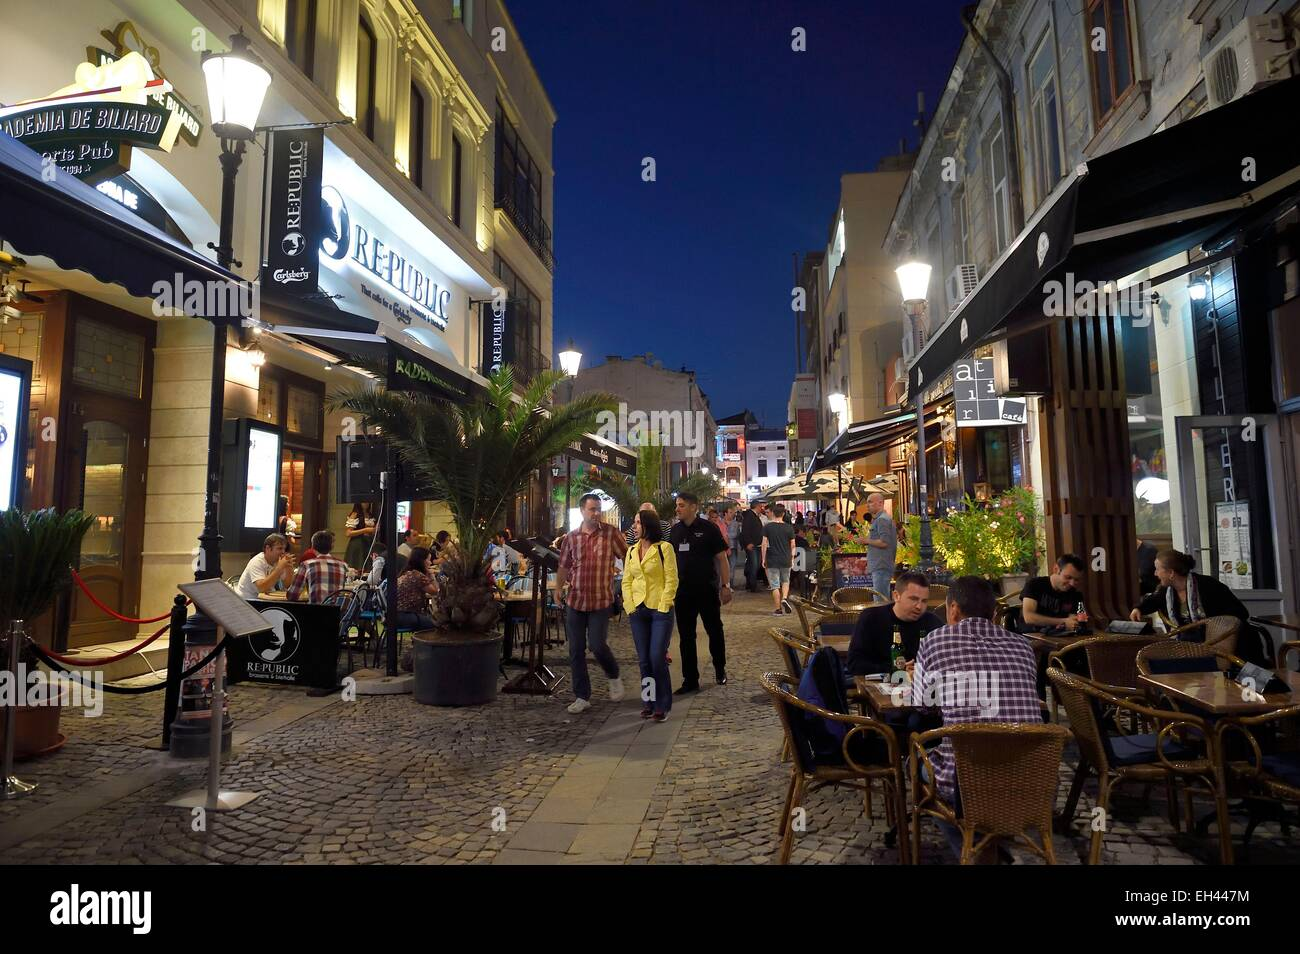 Romania, Bucharest, nightlife in the historic center, Selari street - Stock Image